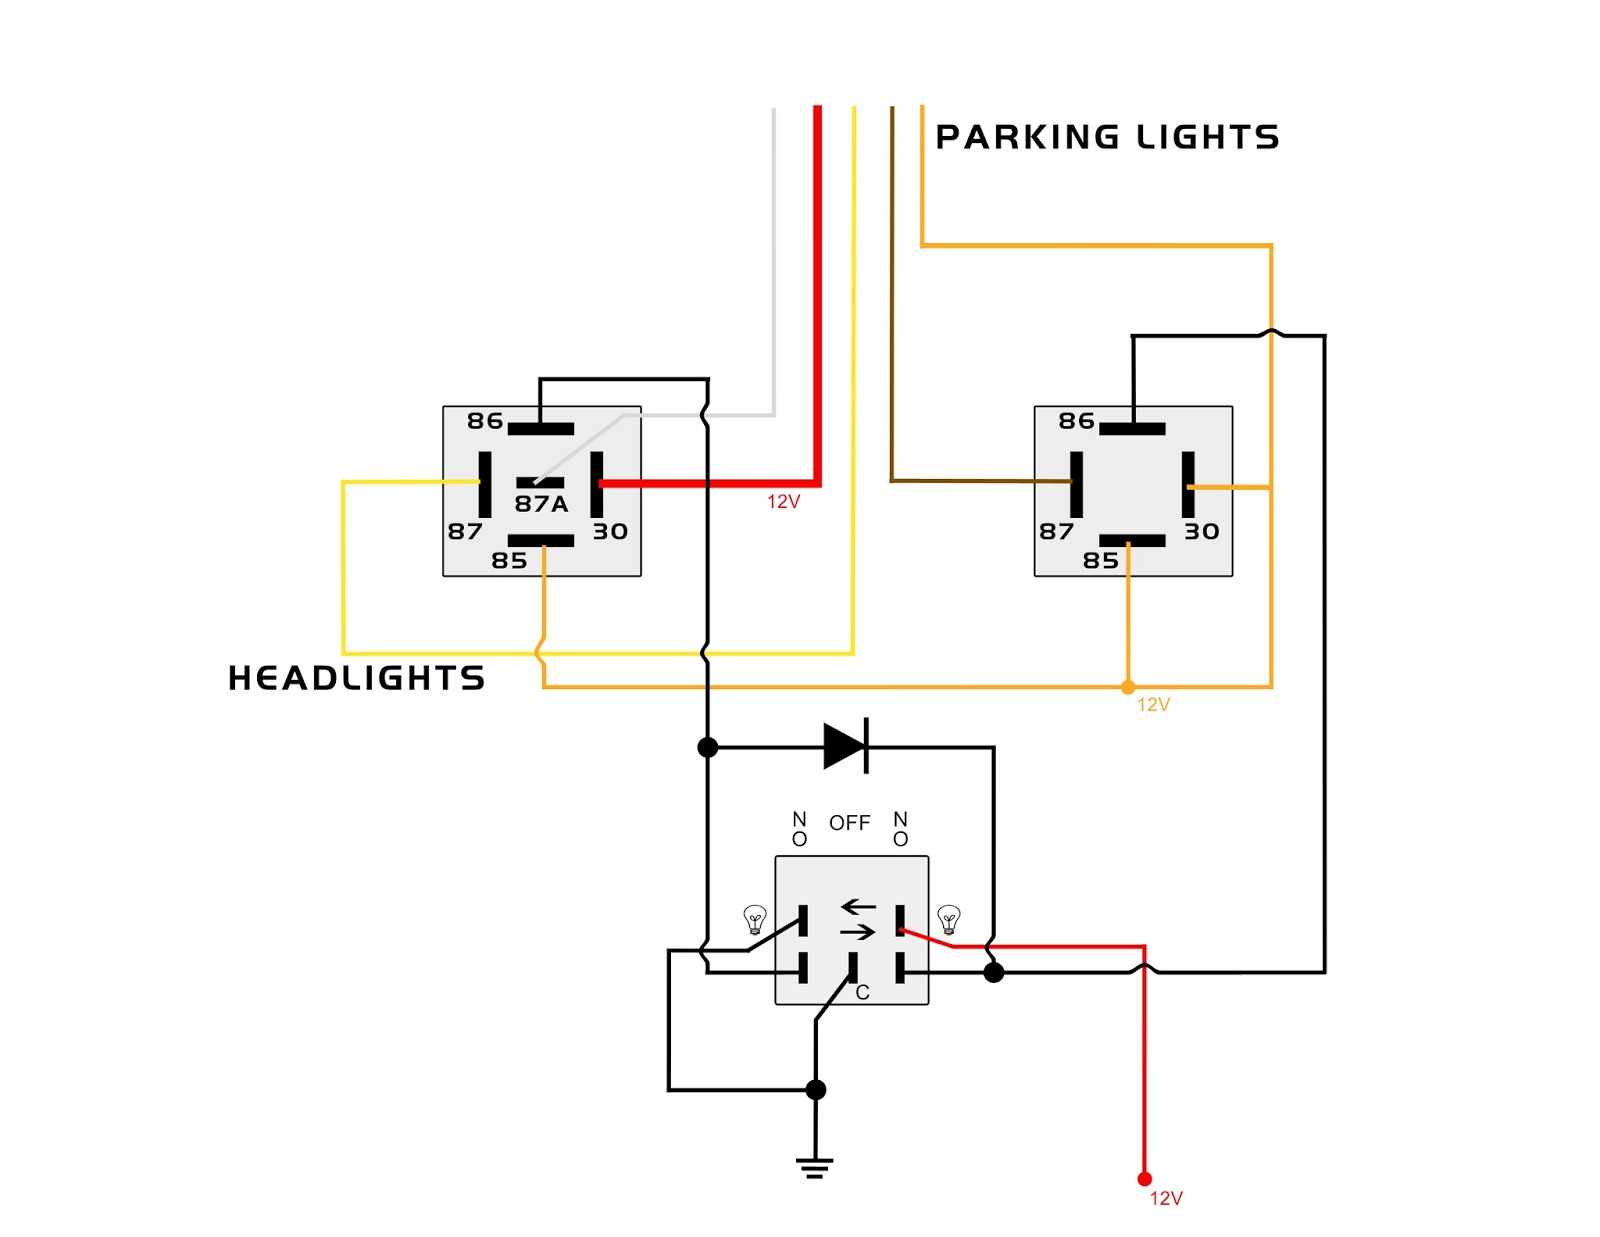 3 position toggle switch on off wiring diagram eye muscles labeled my knight rider 2000 project: parking and headlights lower console auxiliary